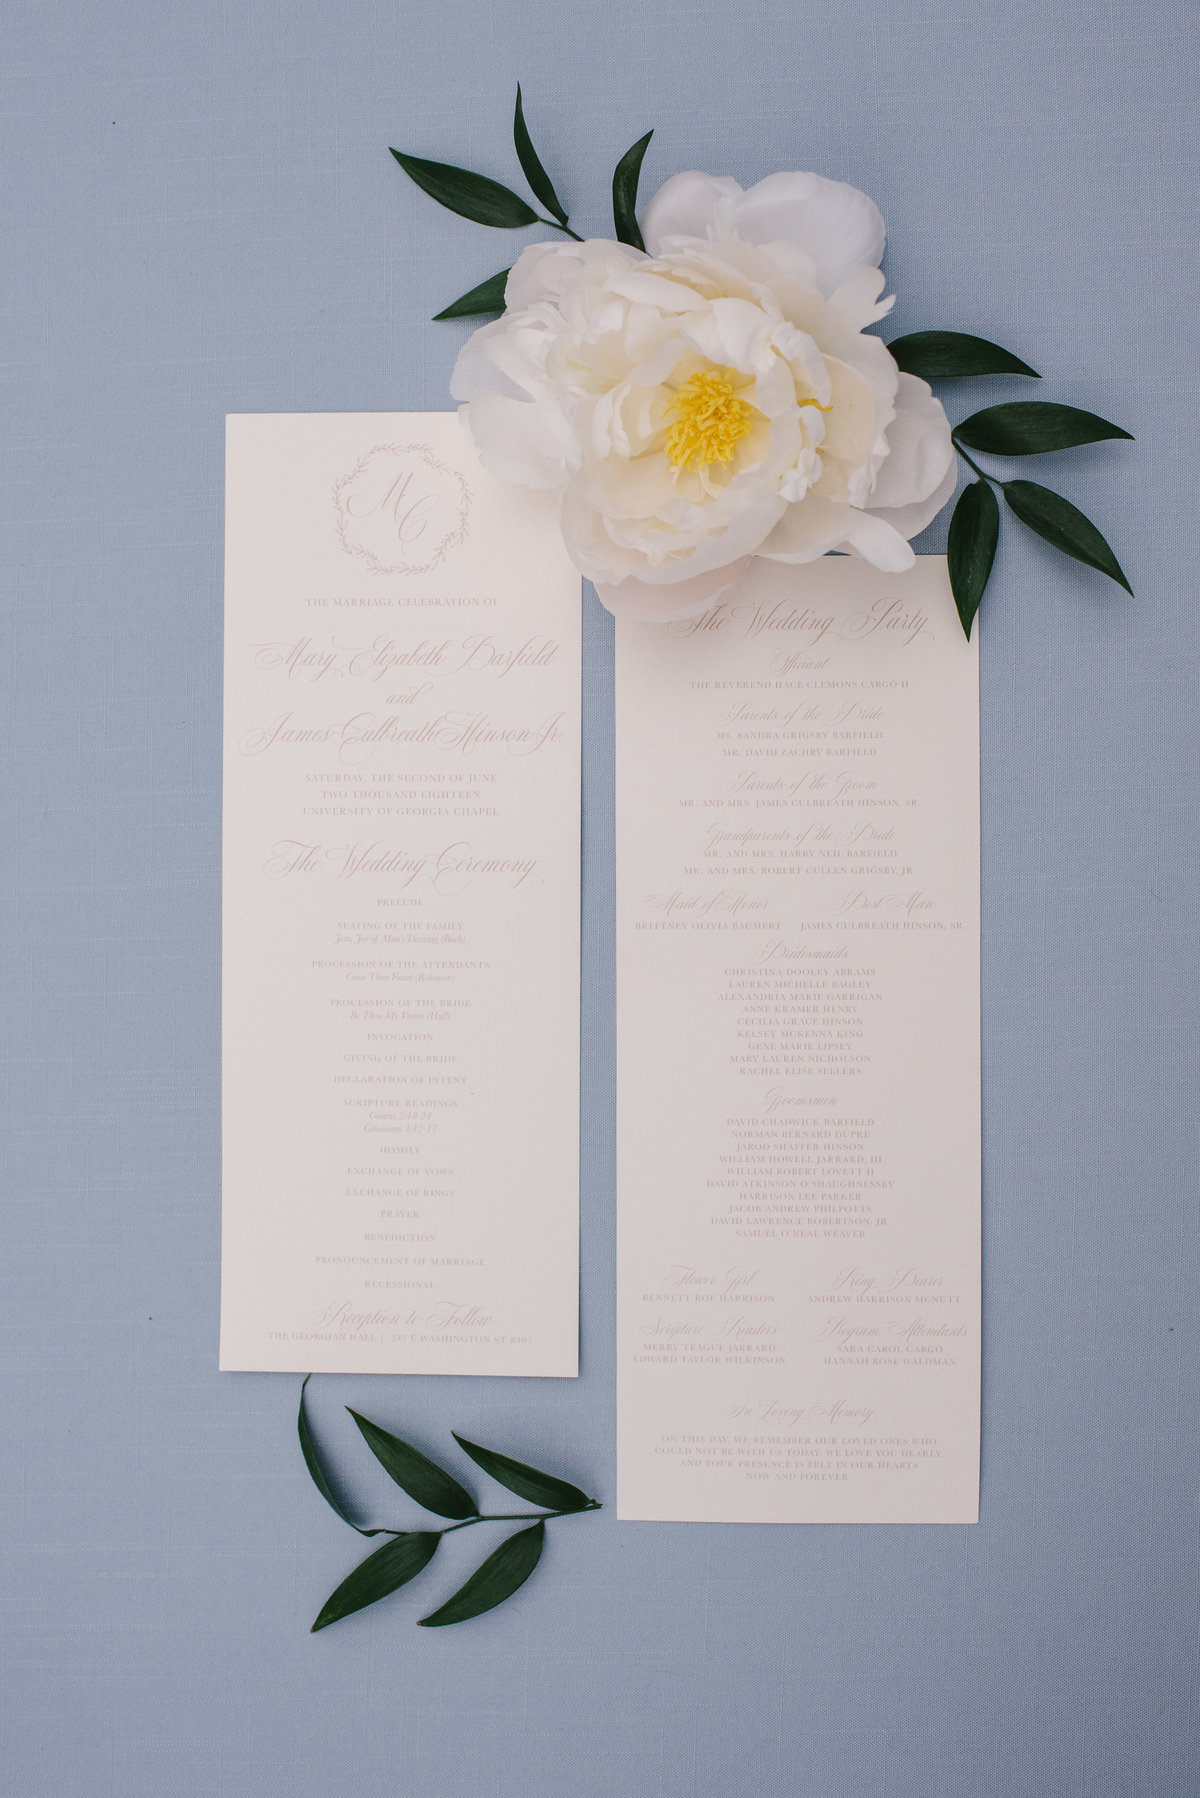 Elegant Ceremony Program